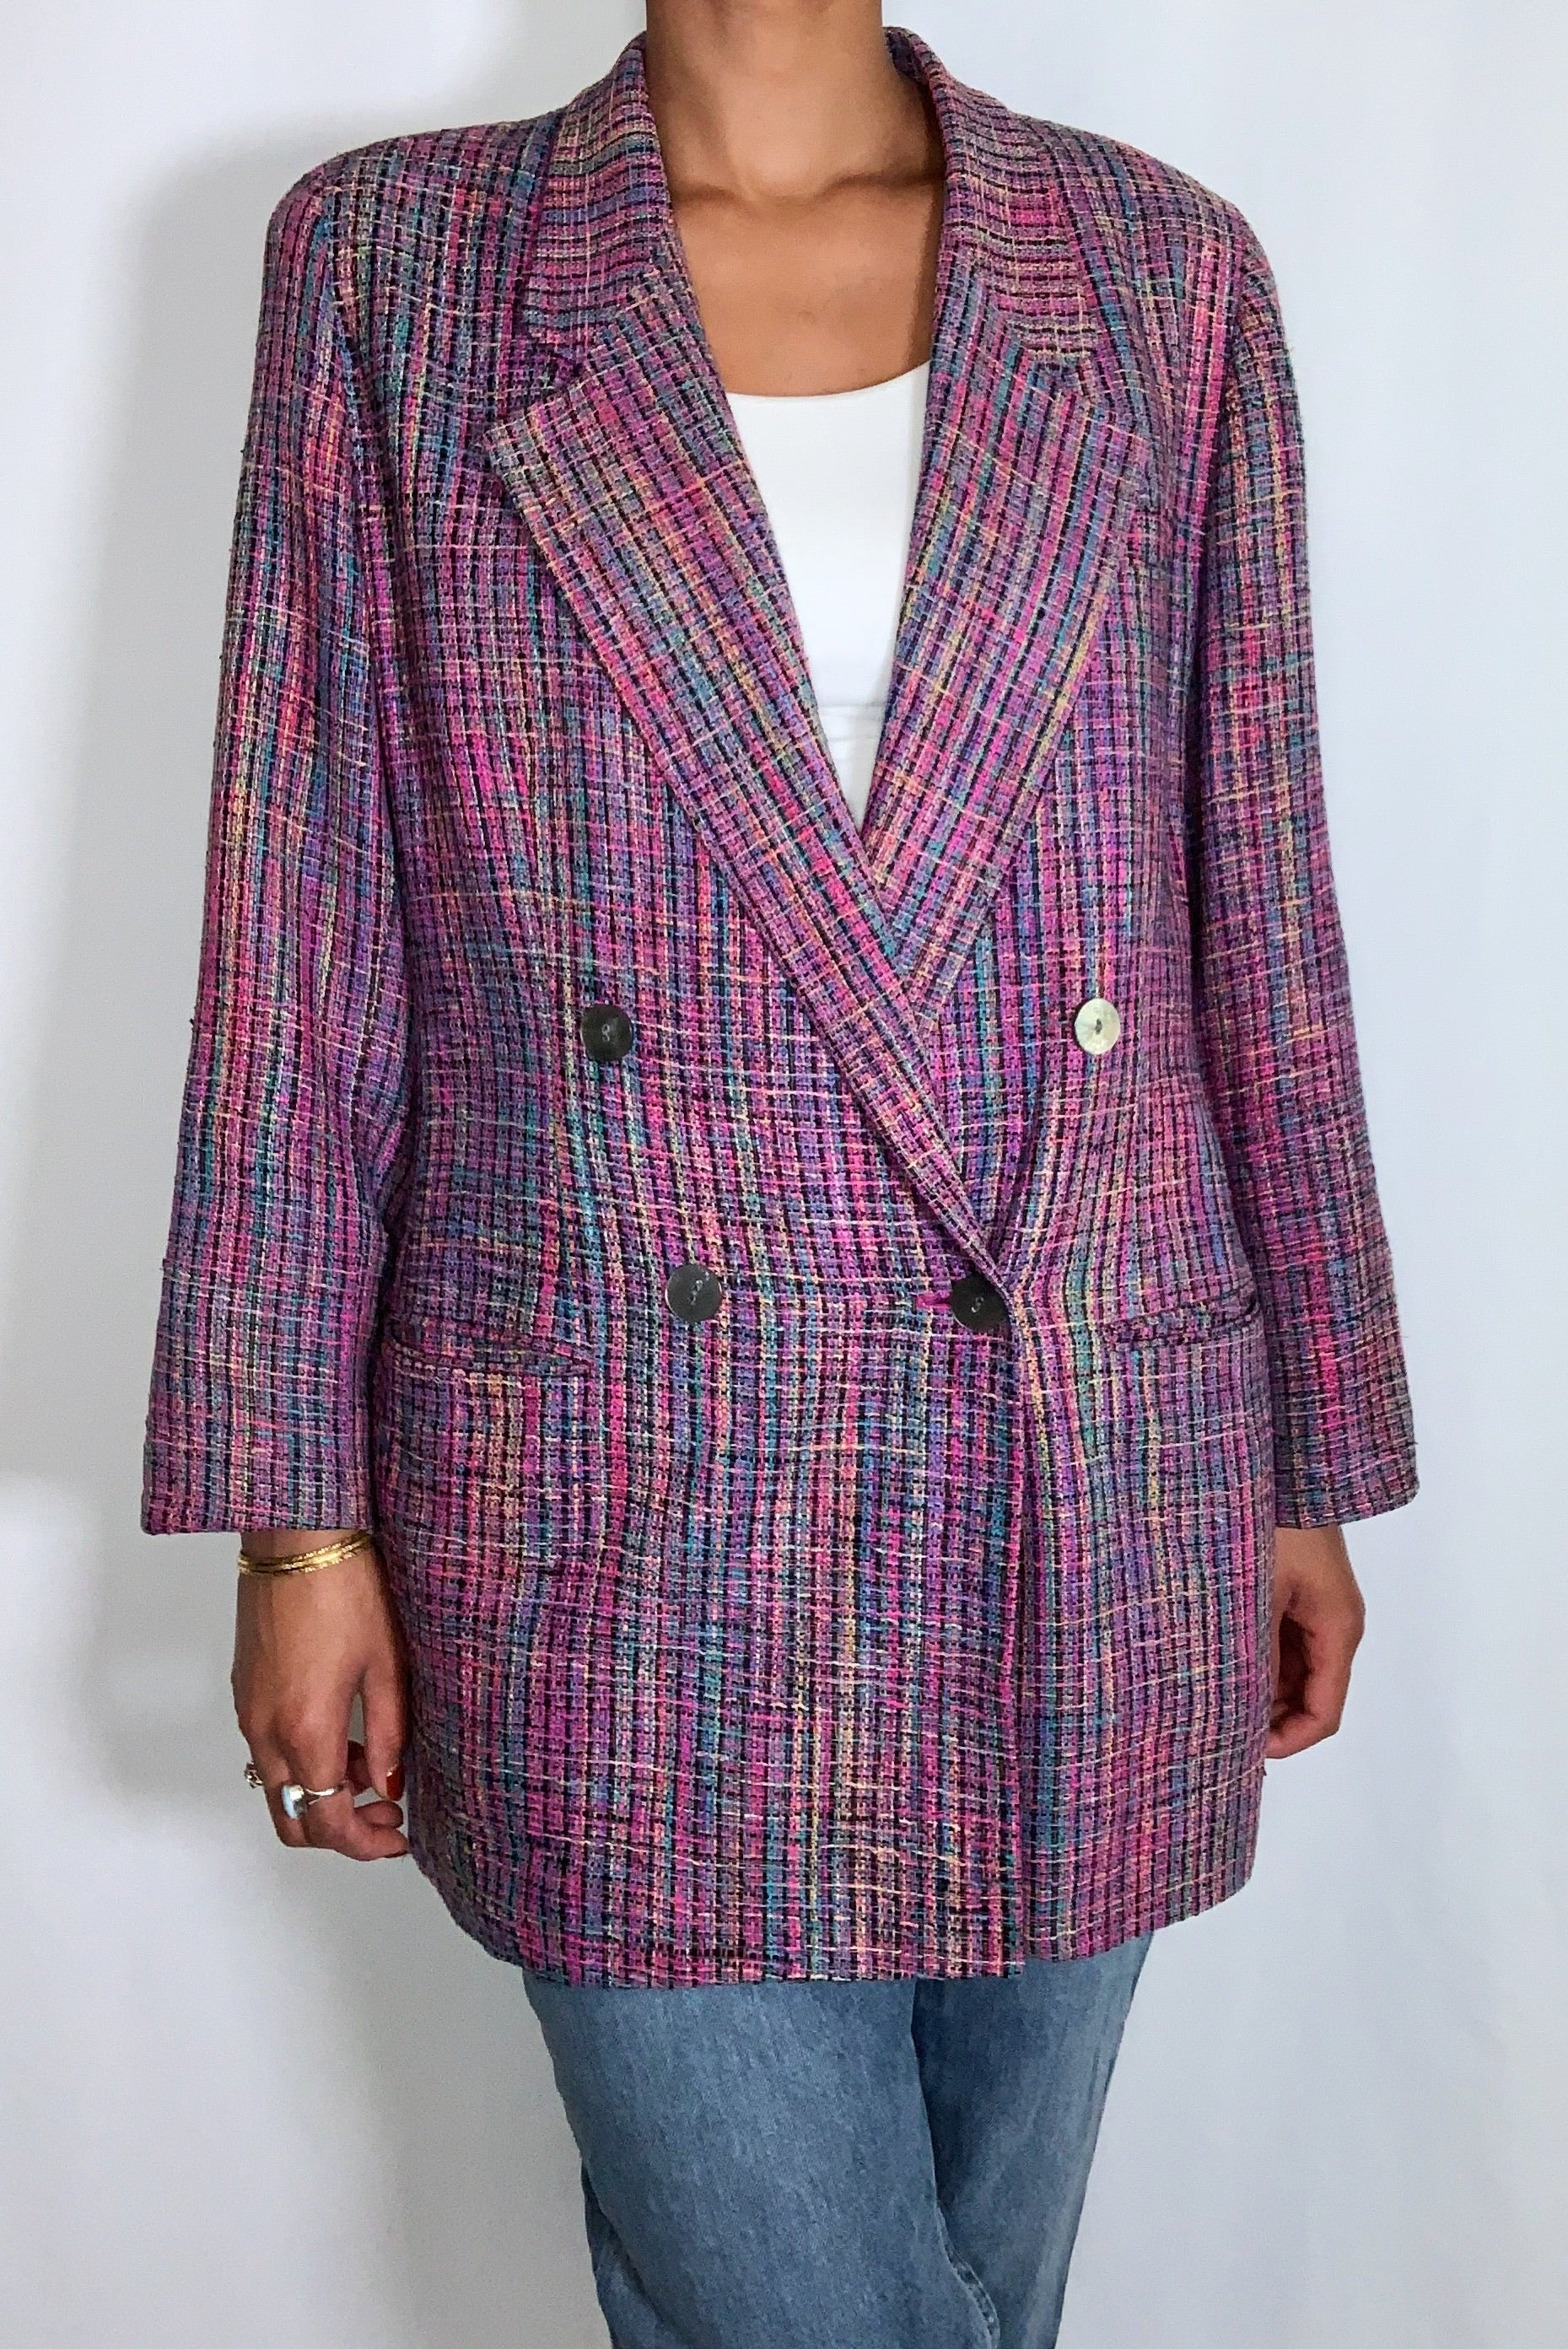 Four Hundred Tailored Collection Vintage Silk Blazer (size 16)